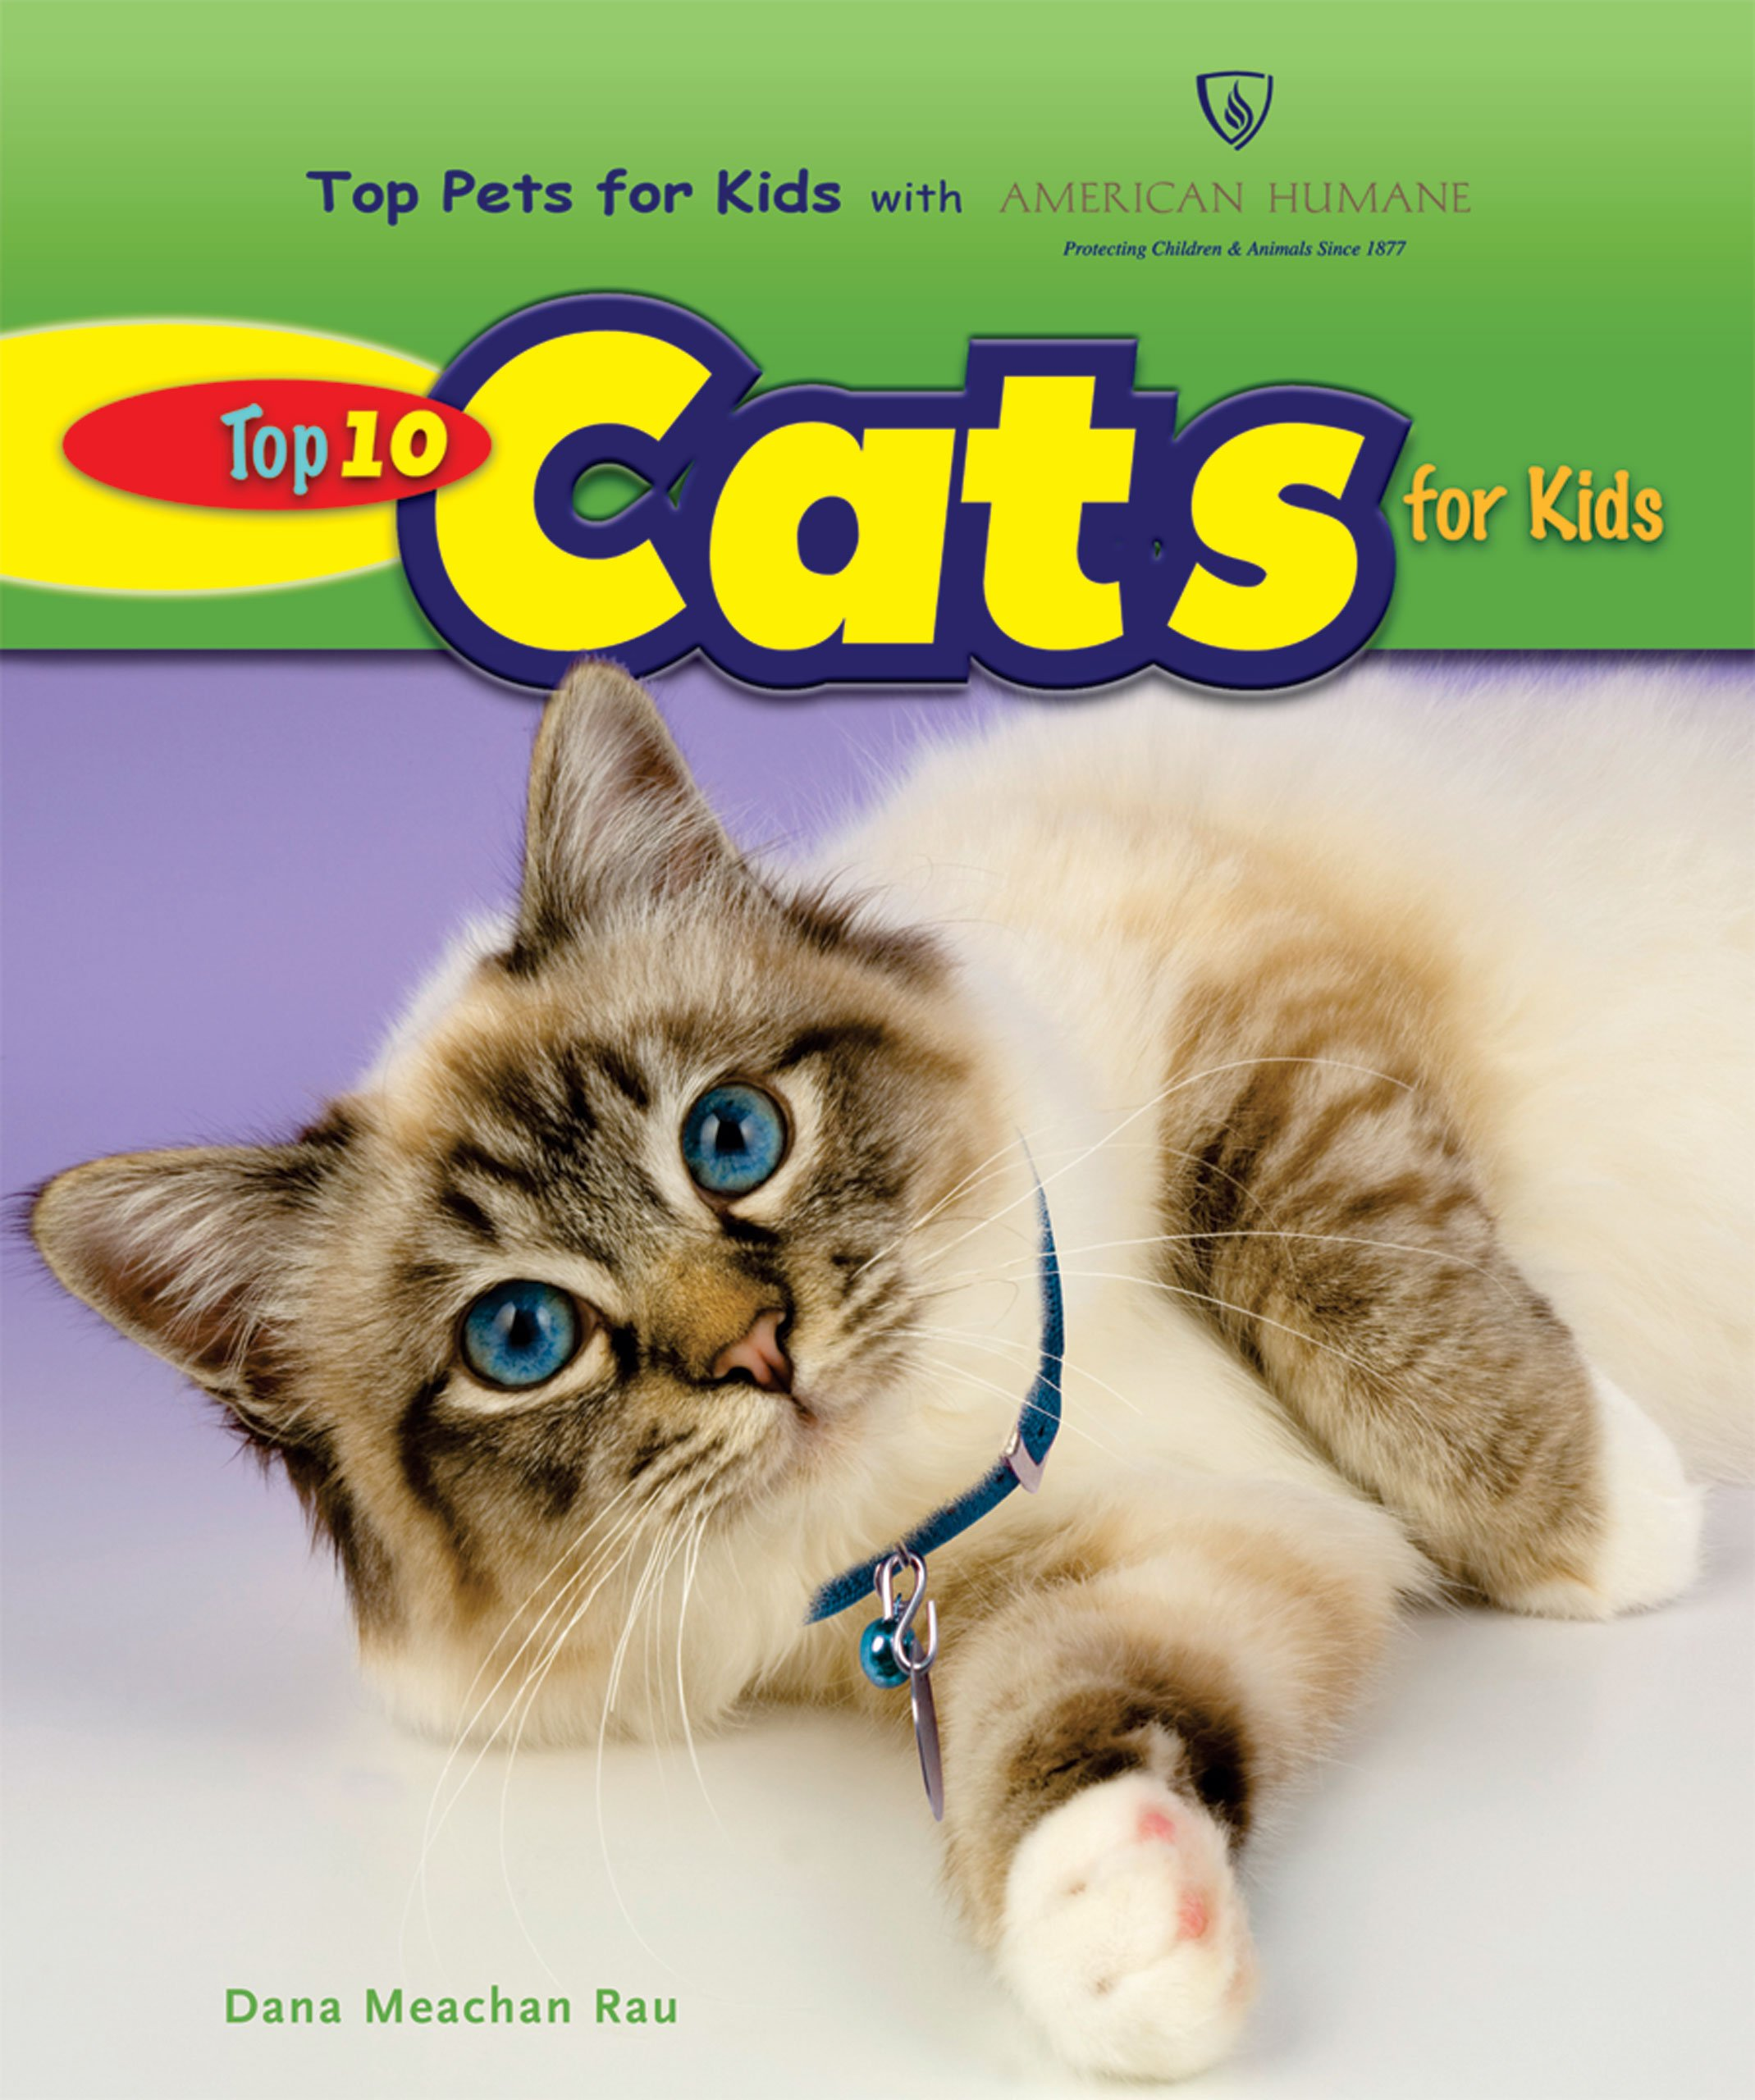 Top 10 Cats for Kids Top Pets for Kids With American Humane